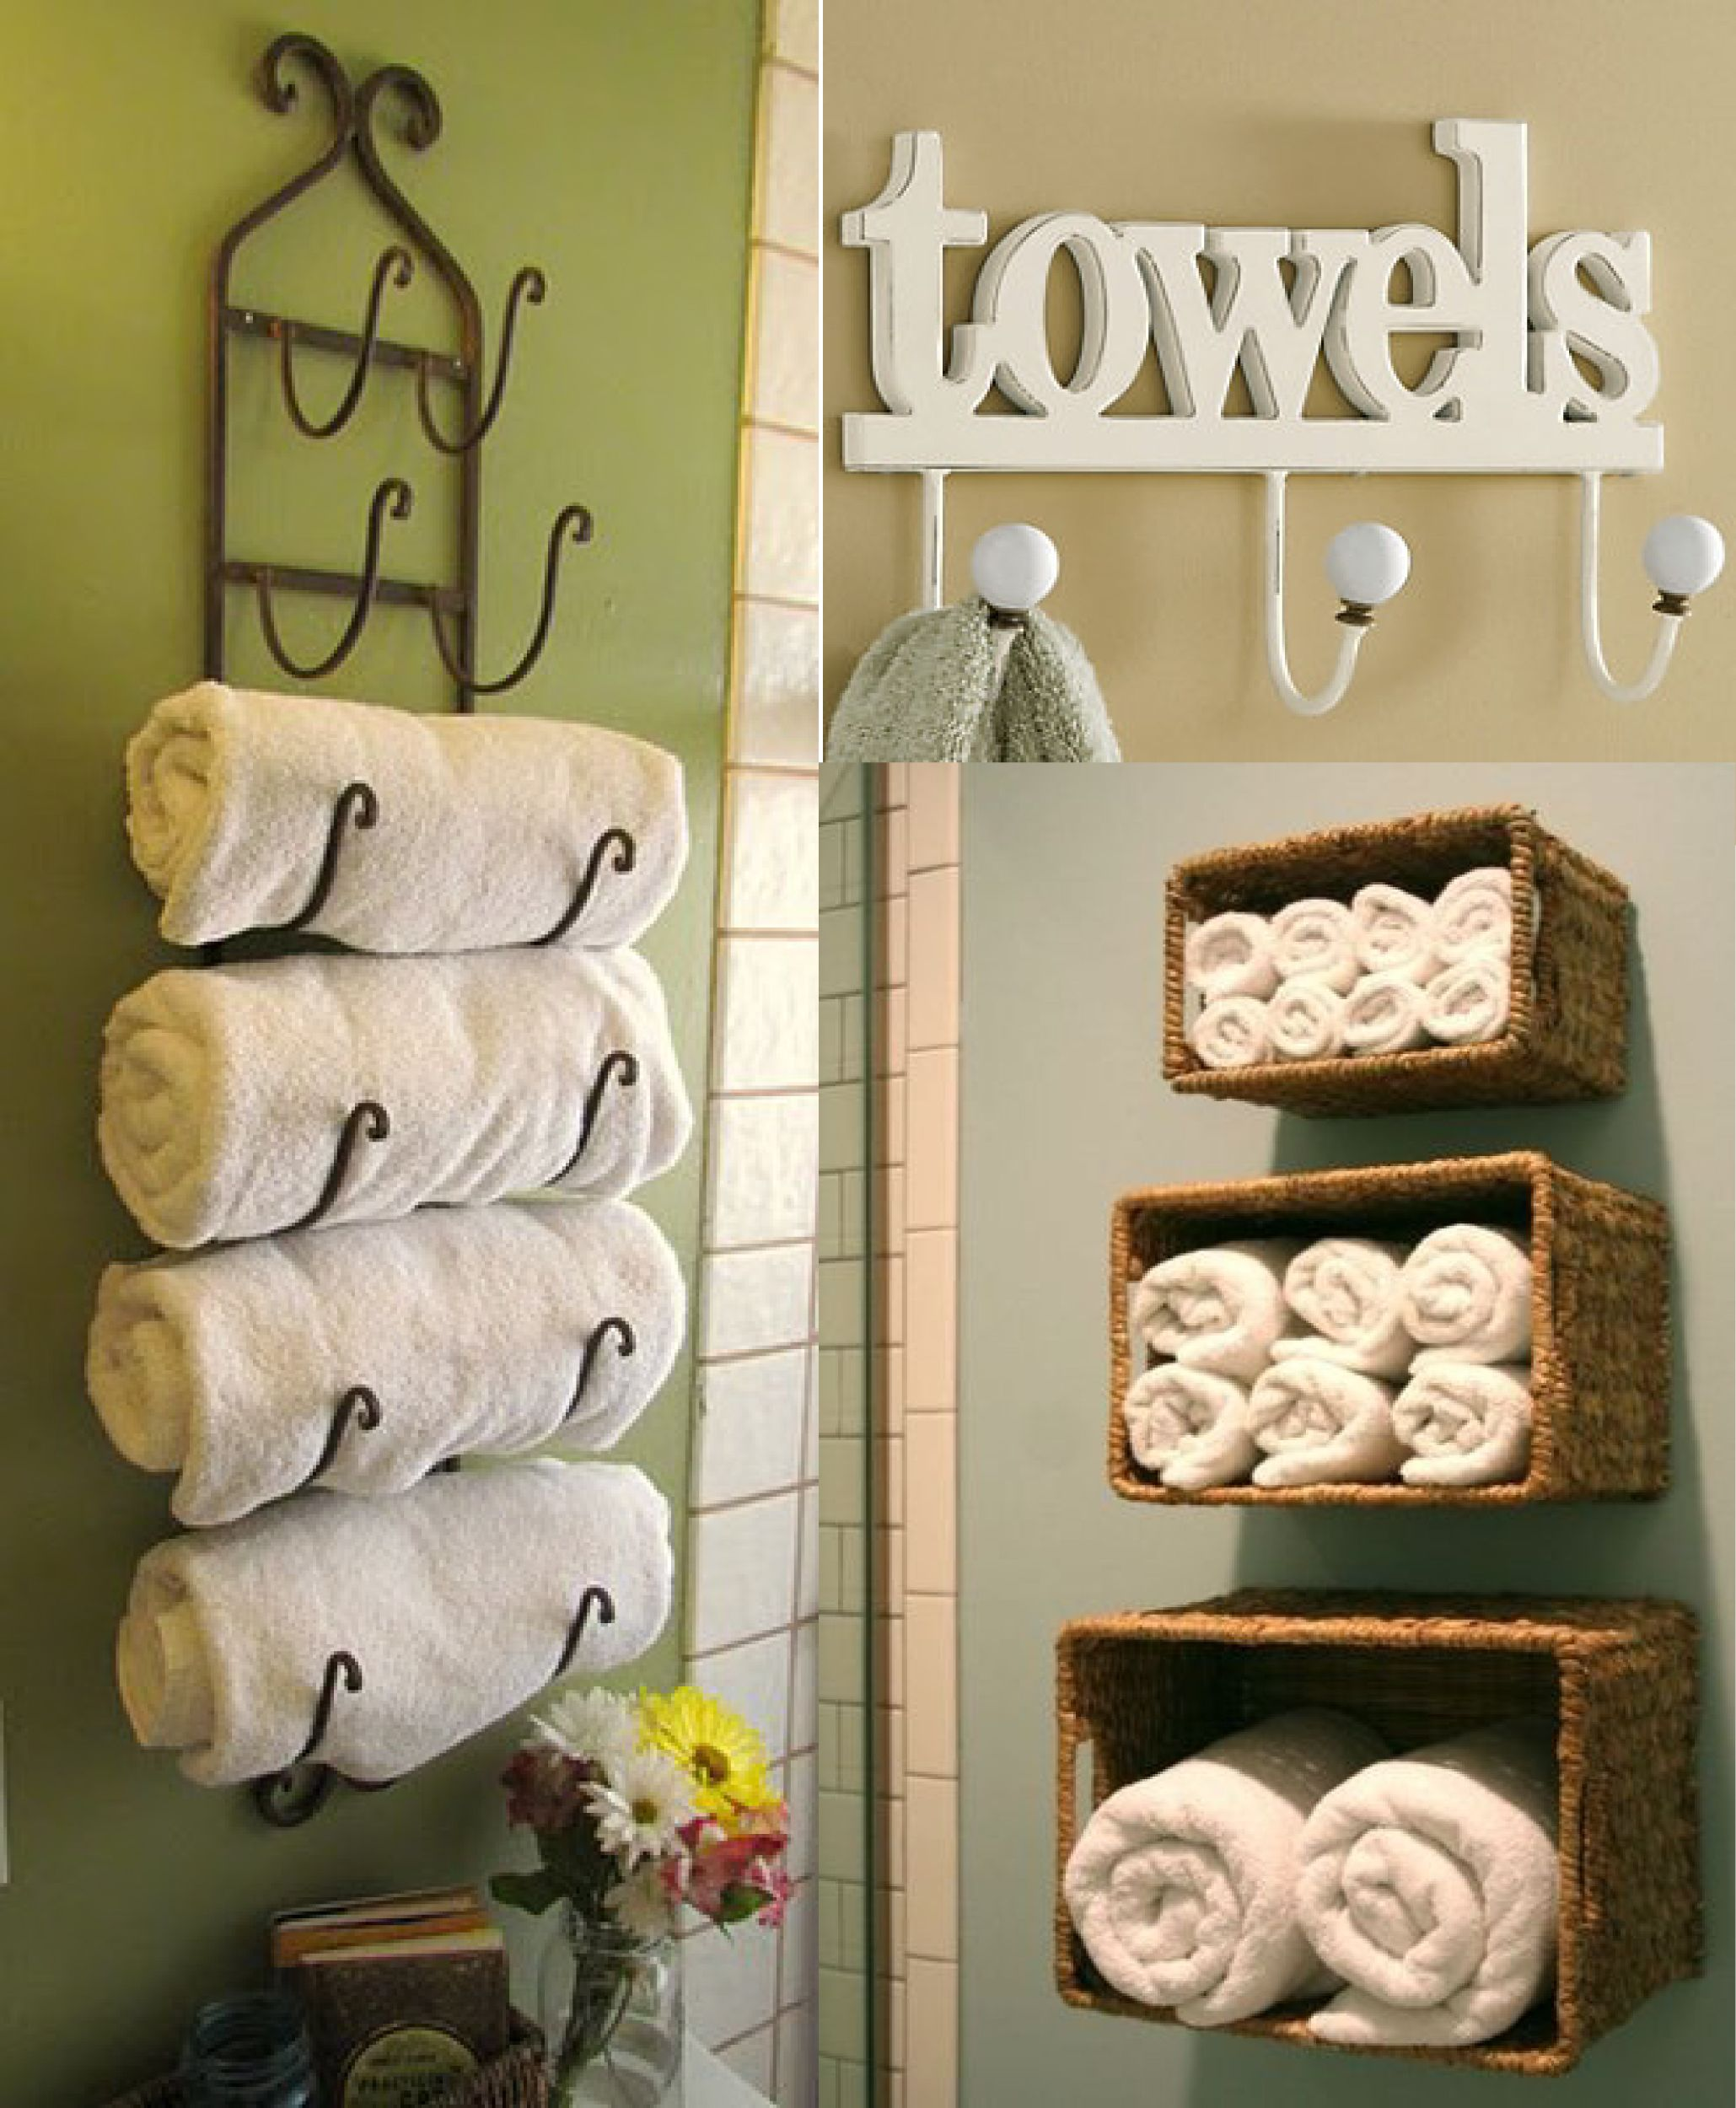 Bathroom Storage Ideas Pinterest By Shannon Rooks Corporate - Bathroom towel hanging ideas for small bathroom ideas